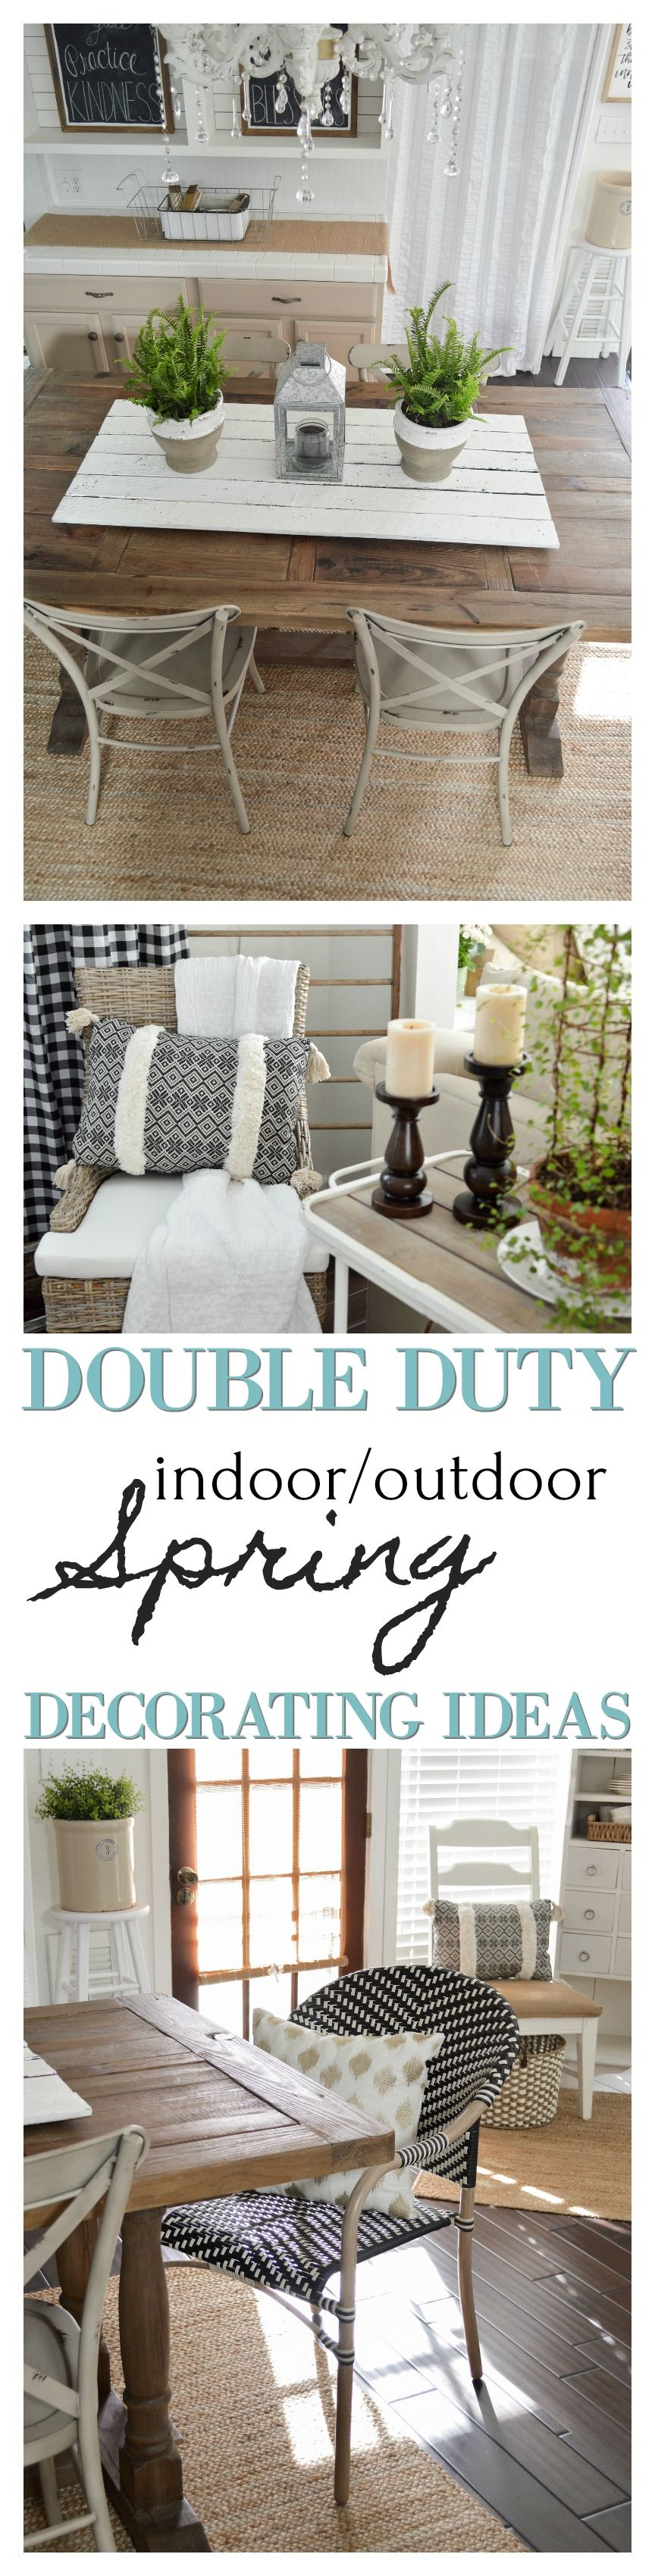 Double duty indoor decorating ideas for Spring with outdoor furniture and decor from Better Homes & Gardens at www.foxhollowcottage.com #sponsored | Simple, affordable cottage Farmhouse decorating inspiration that'll working inside now, and outside for BBQ's, patio parties and Summer outback fun!